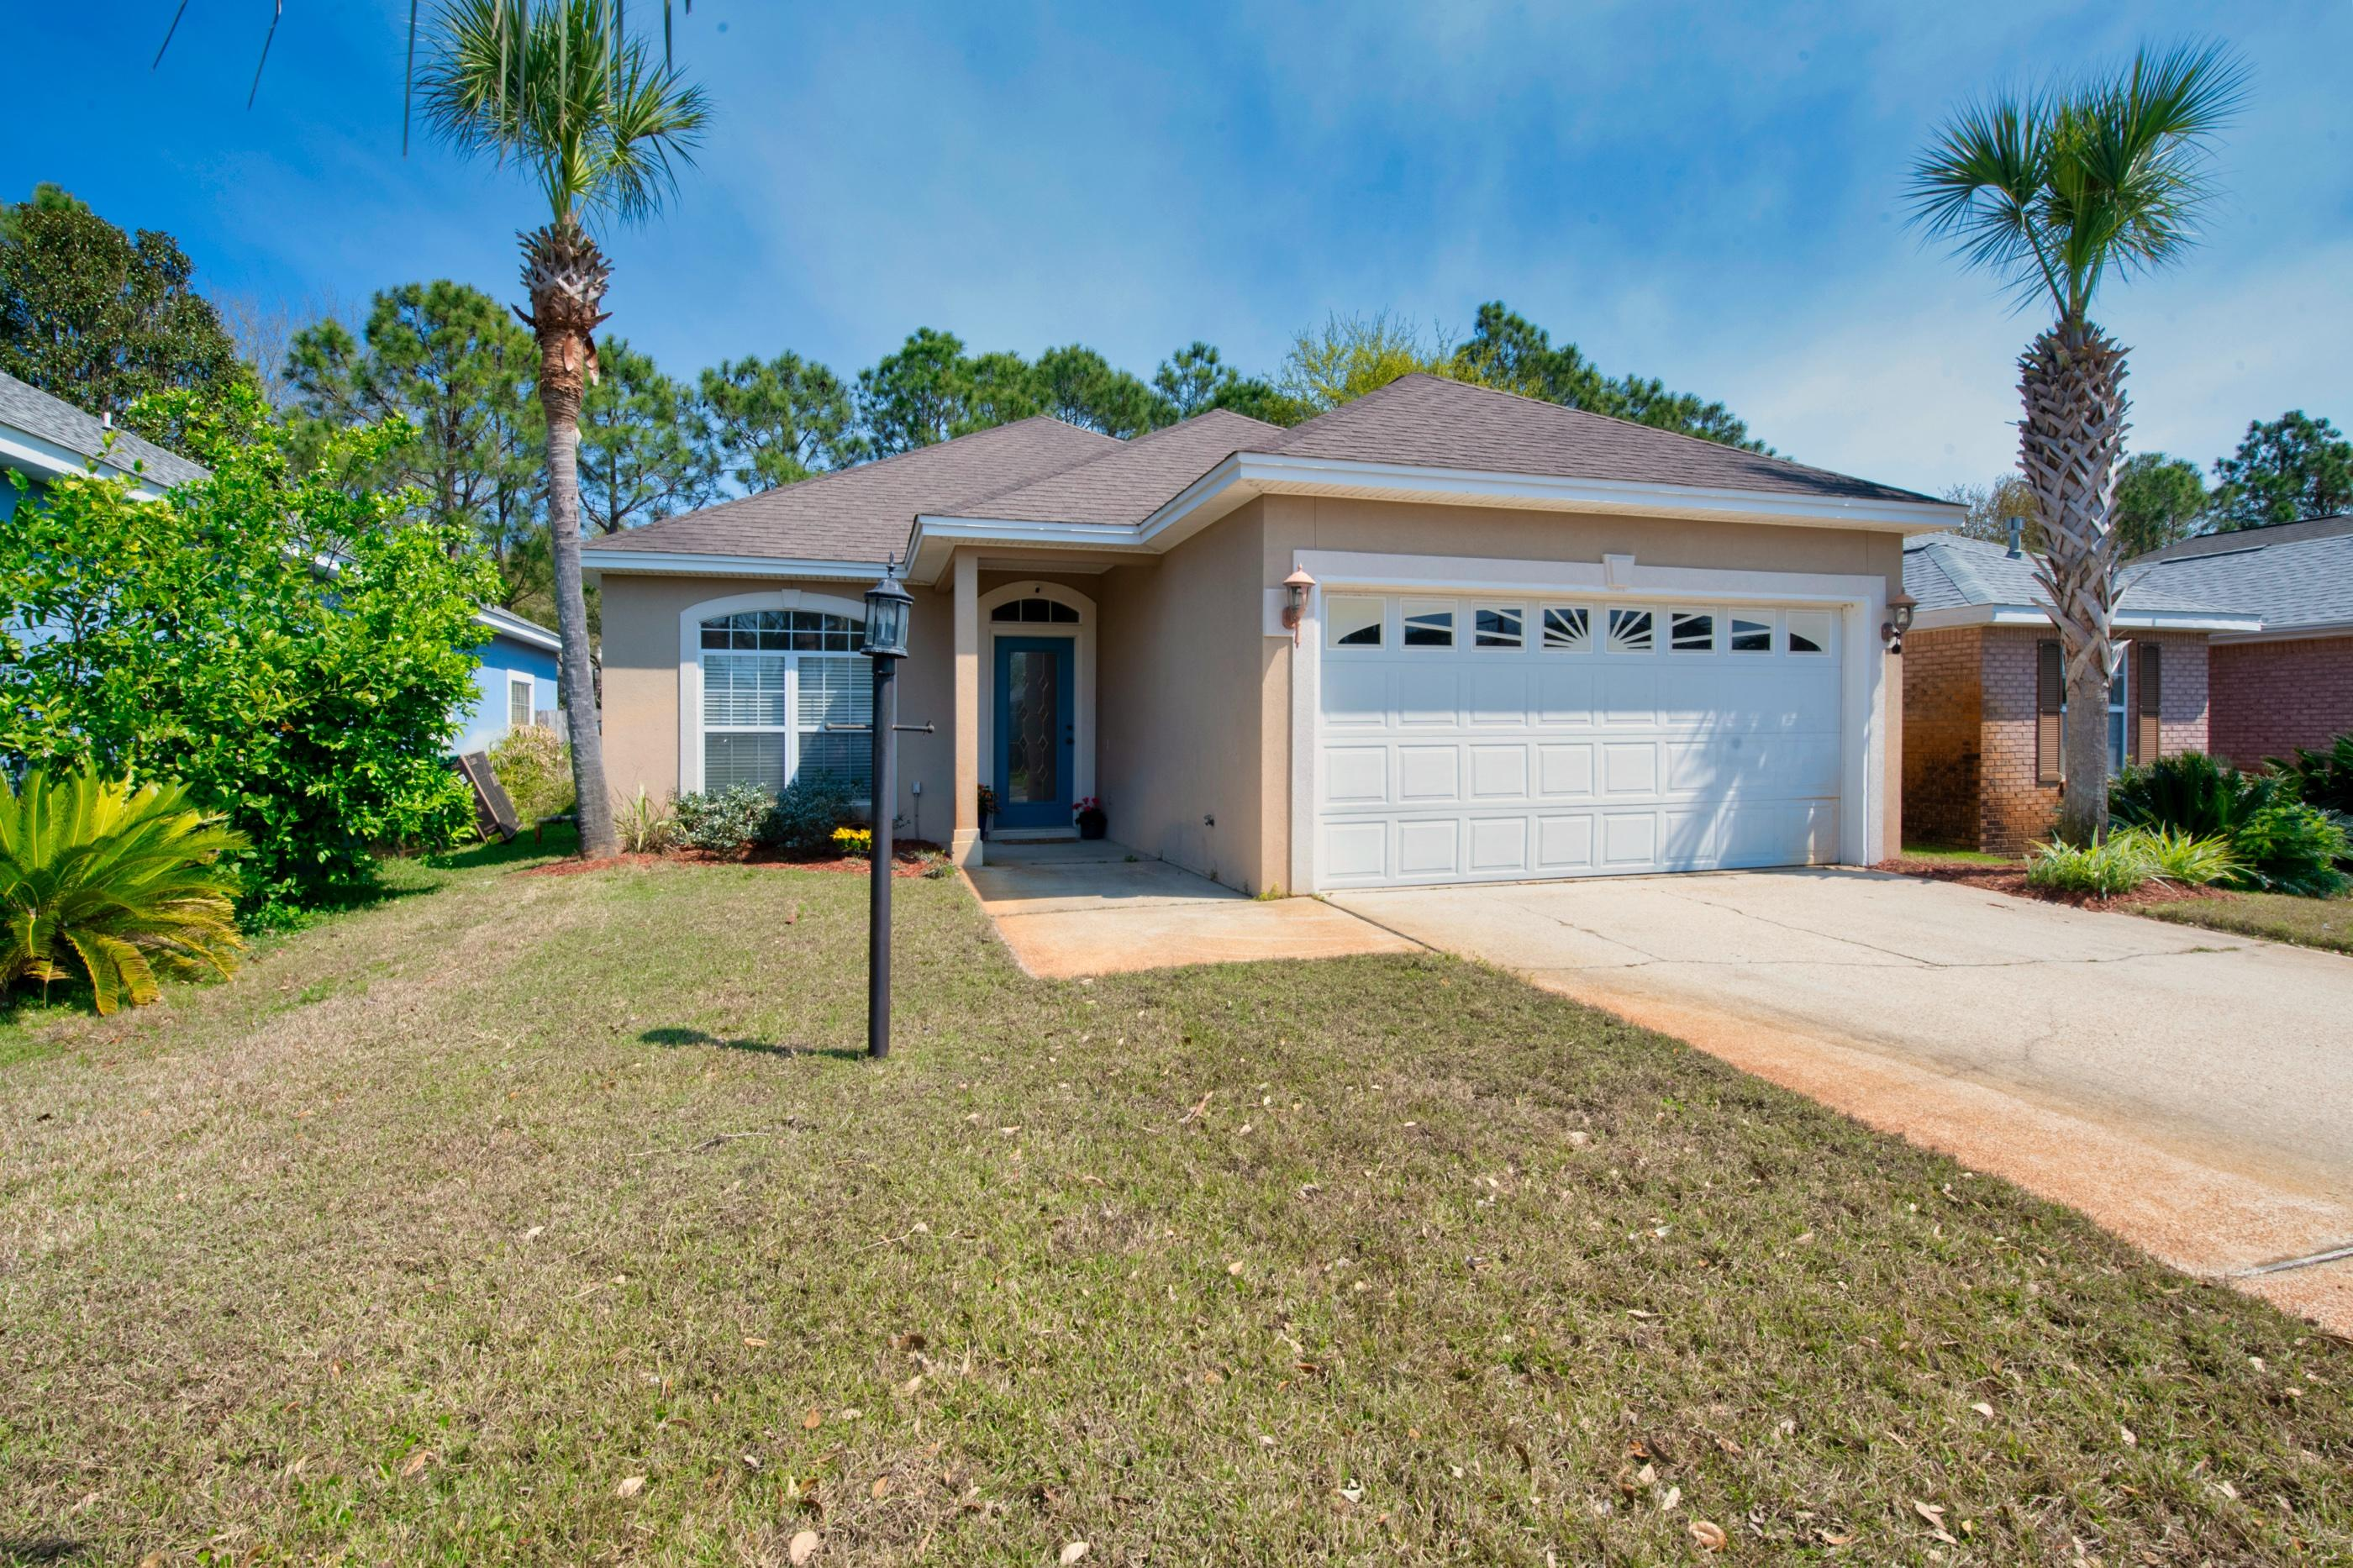 Photo of home for sale at 108 Trista Terrace, Destin FL